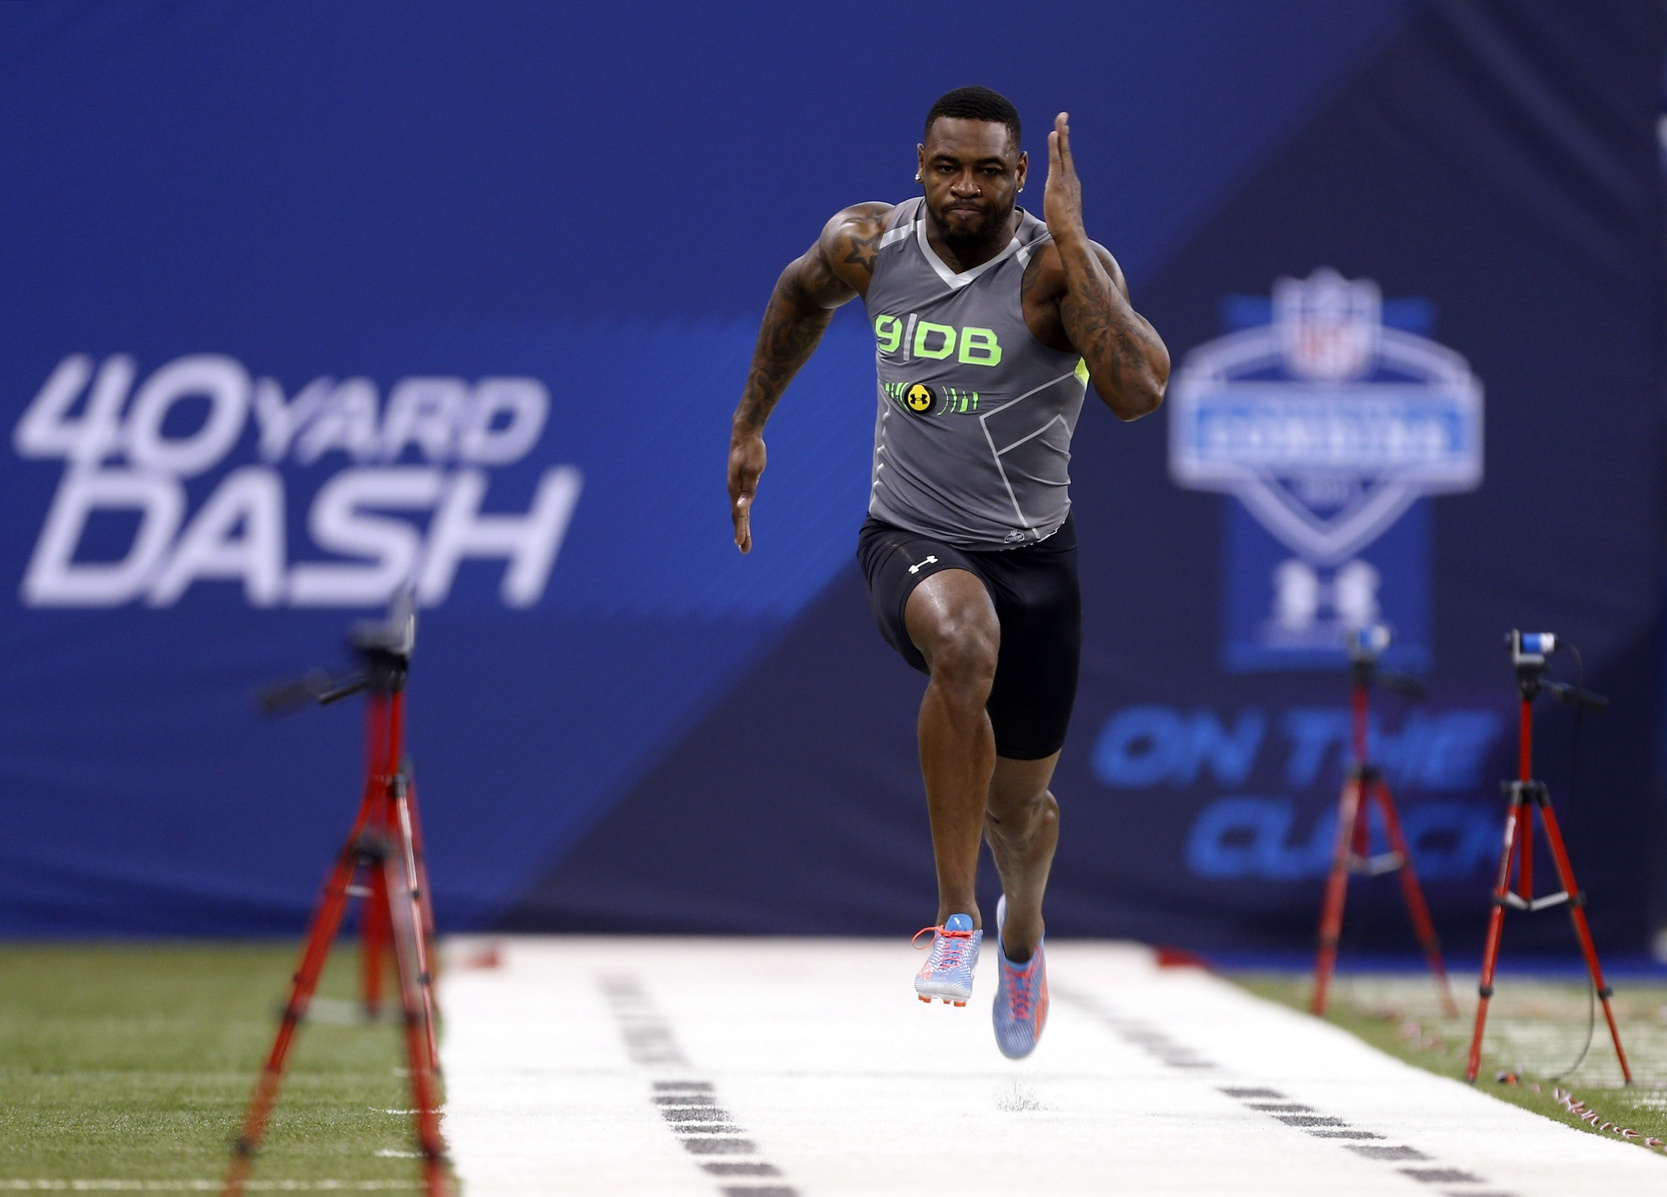 Feb 25, 2014; Indianapolis, IN, USA; Florida State Seminoles defensive back Terrence Brooks runs the 40 yard dash during the 2014 NFL Combine at Lucas Oil Stadium. Mandatory Credit: Brian Spurlock-USA TODAY Sports